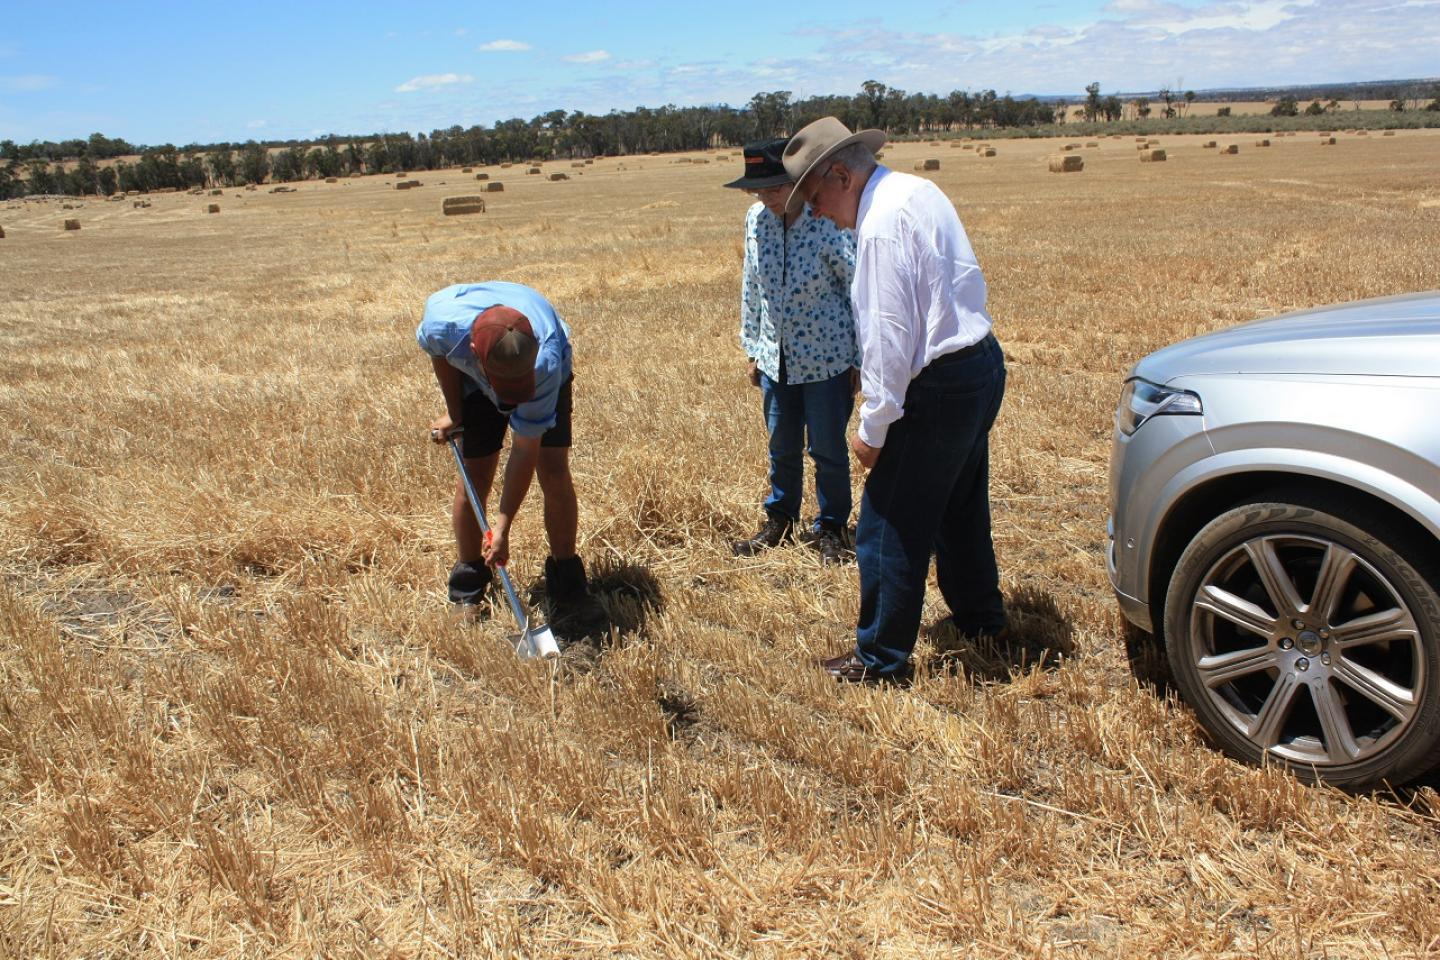 Cranbrook farmer Theo Cunningham (left) digs into an old root pathway to examine subsoil. He is being watched by Ausplow research and development coordinator Dr Margaret Roper and Ausplow managing director John Ryan AM.